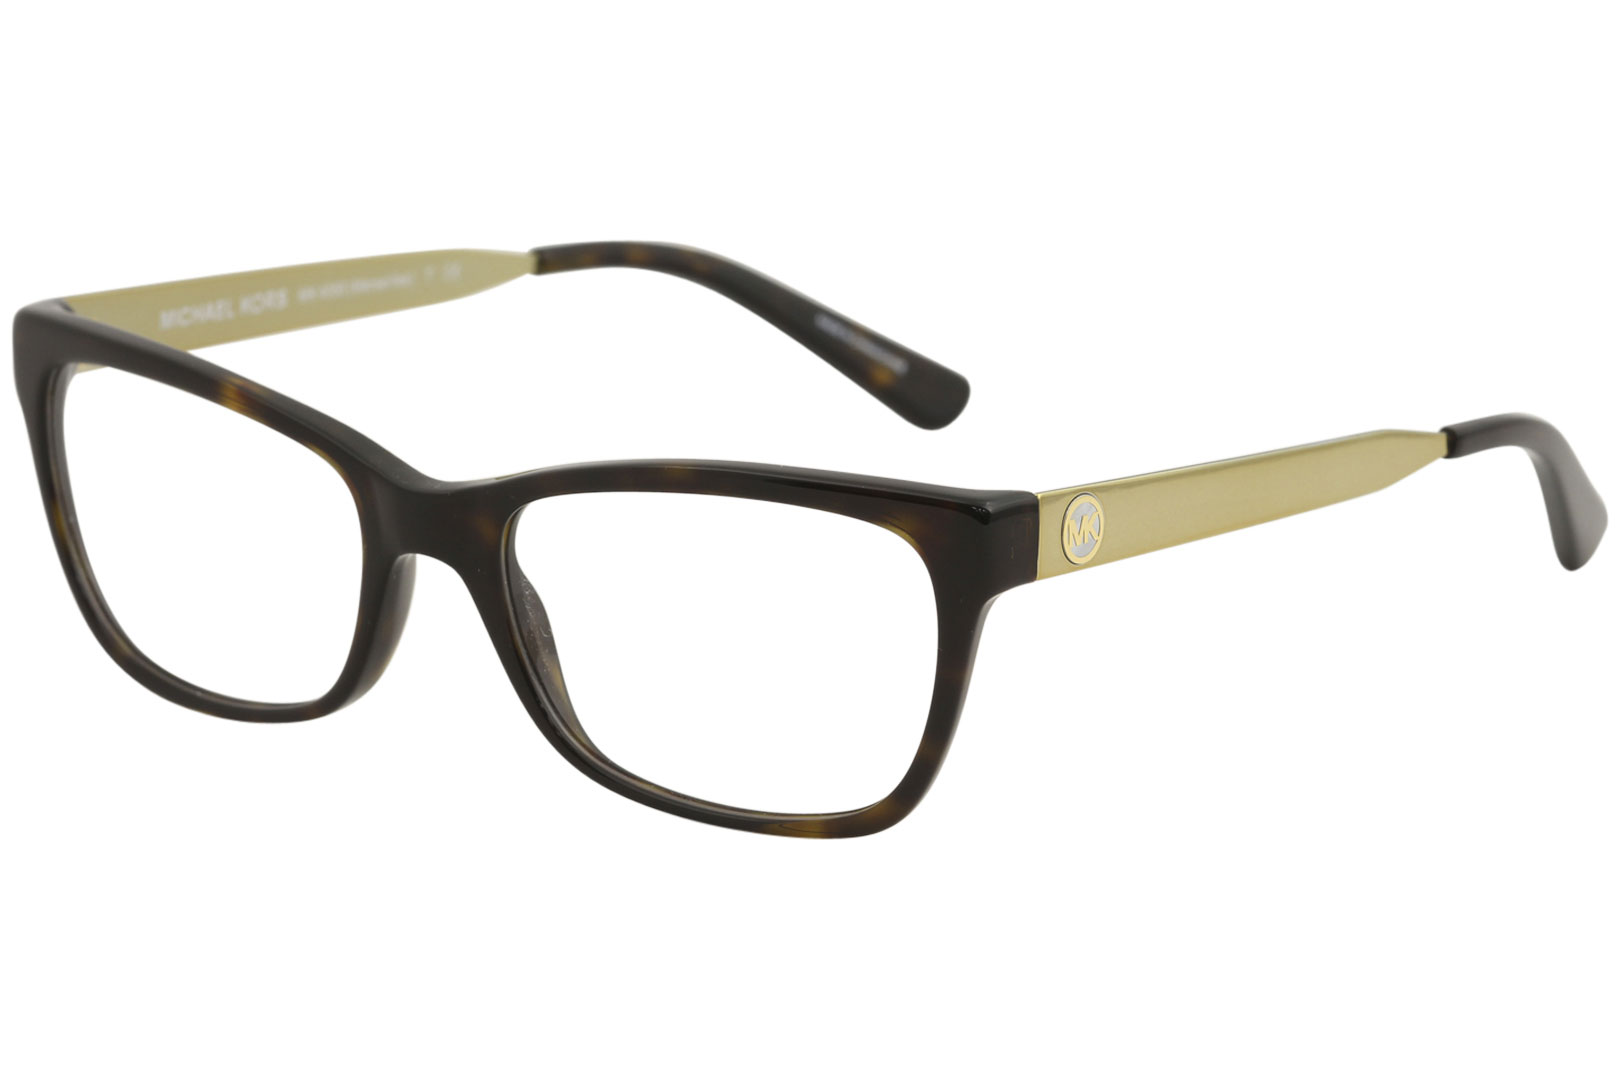 bb552a8081b Michael Kors Eyeglasses Marseilles MK4050 4050 3293 Tortoise Optical ...